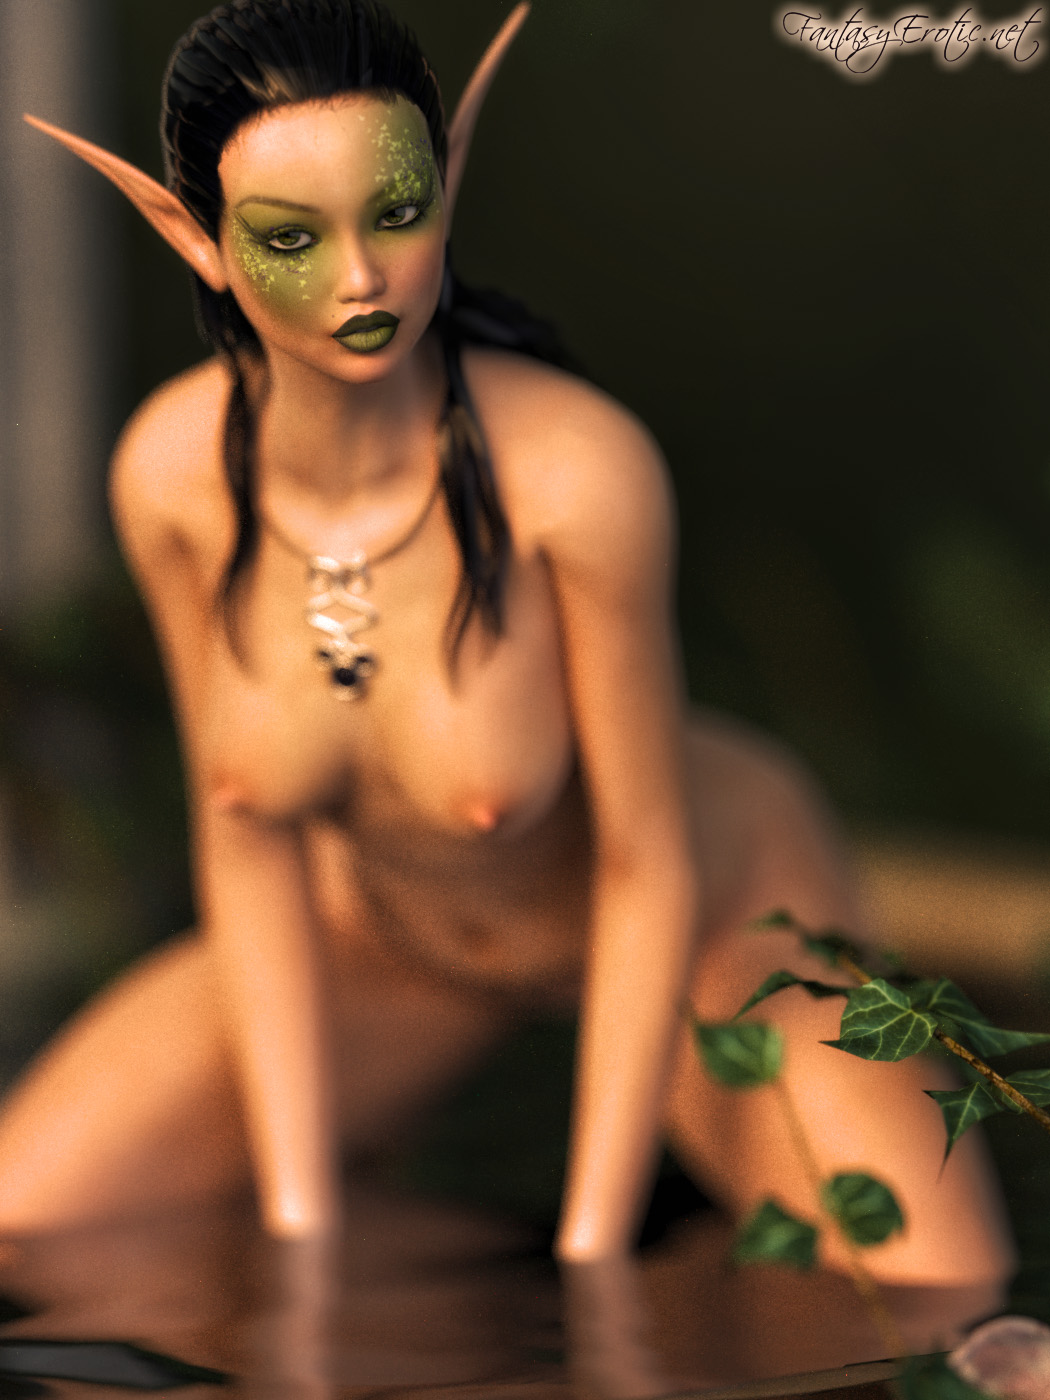 Fantasy 3d angele model nude sex thumbs